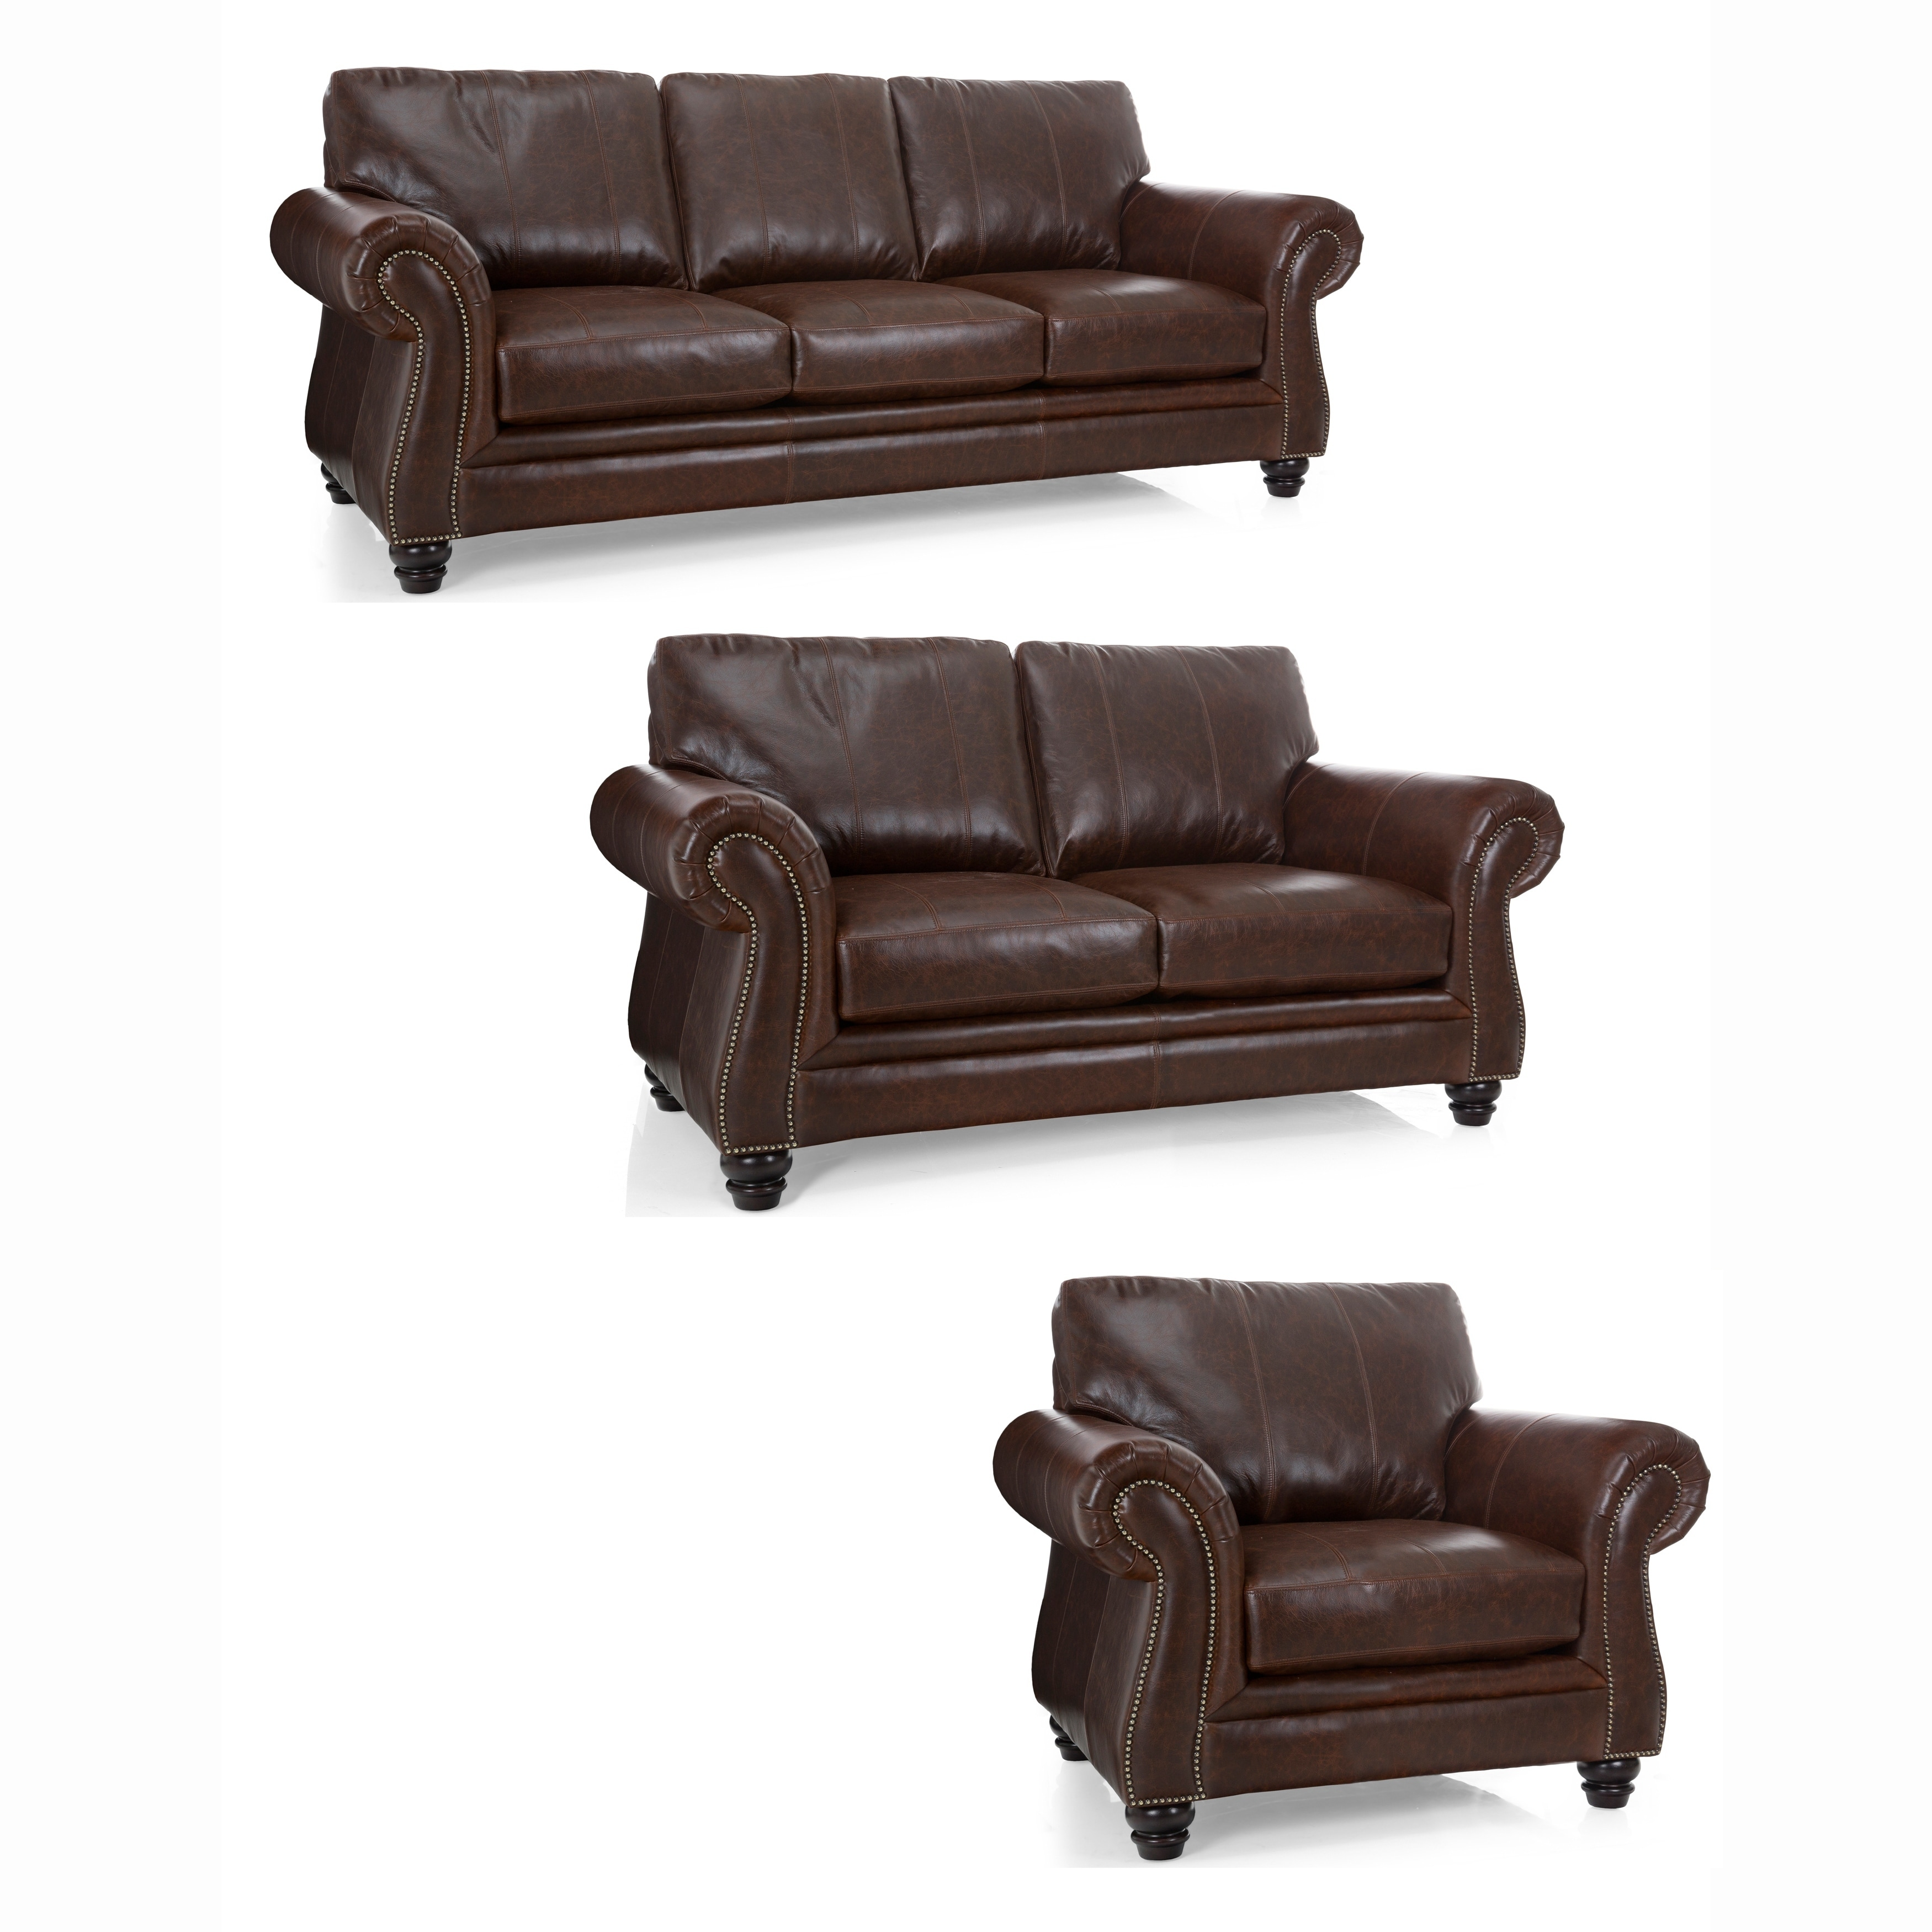 pin shoreline best and deals italian on chocolate sofa sets leather loveseat overstock com shopping living chair the set room